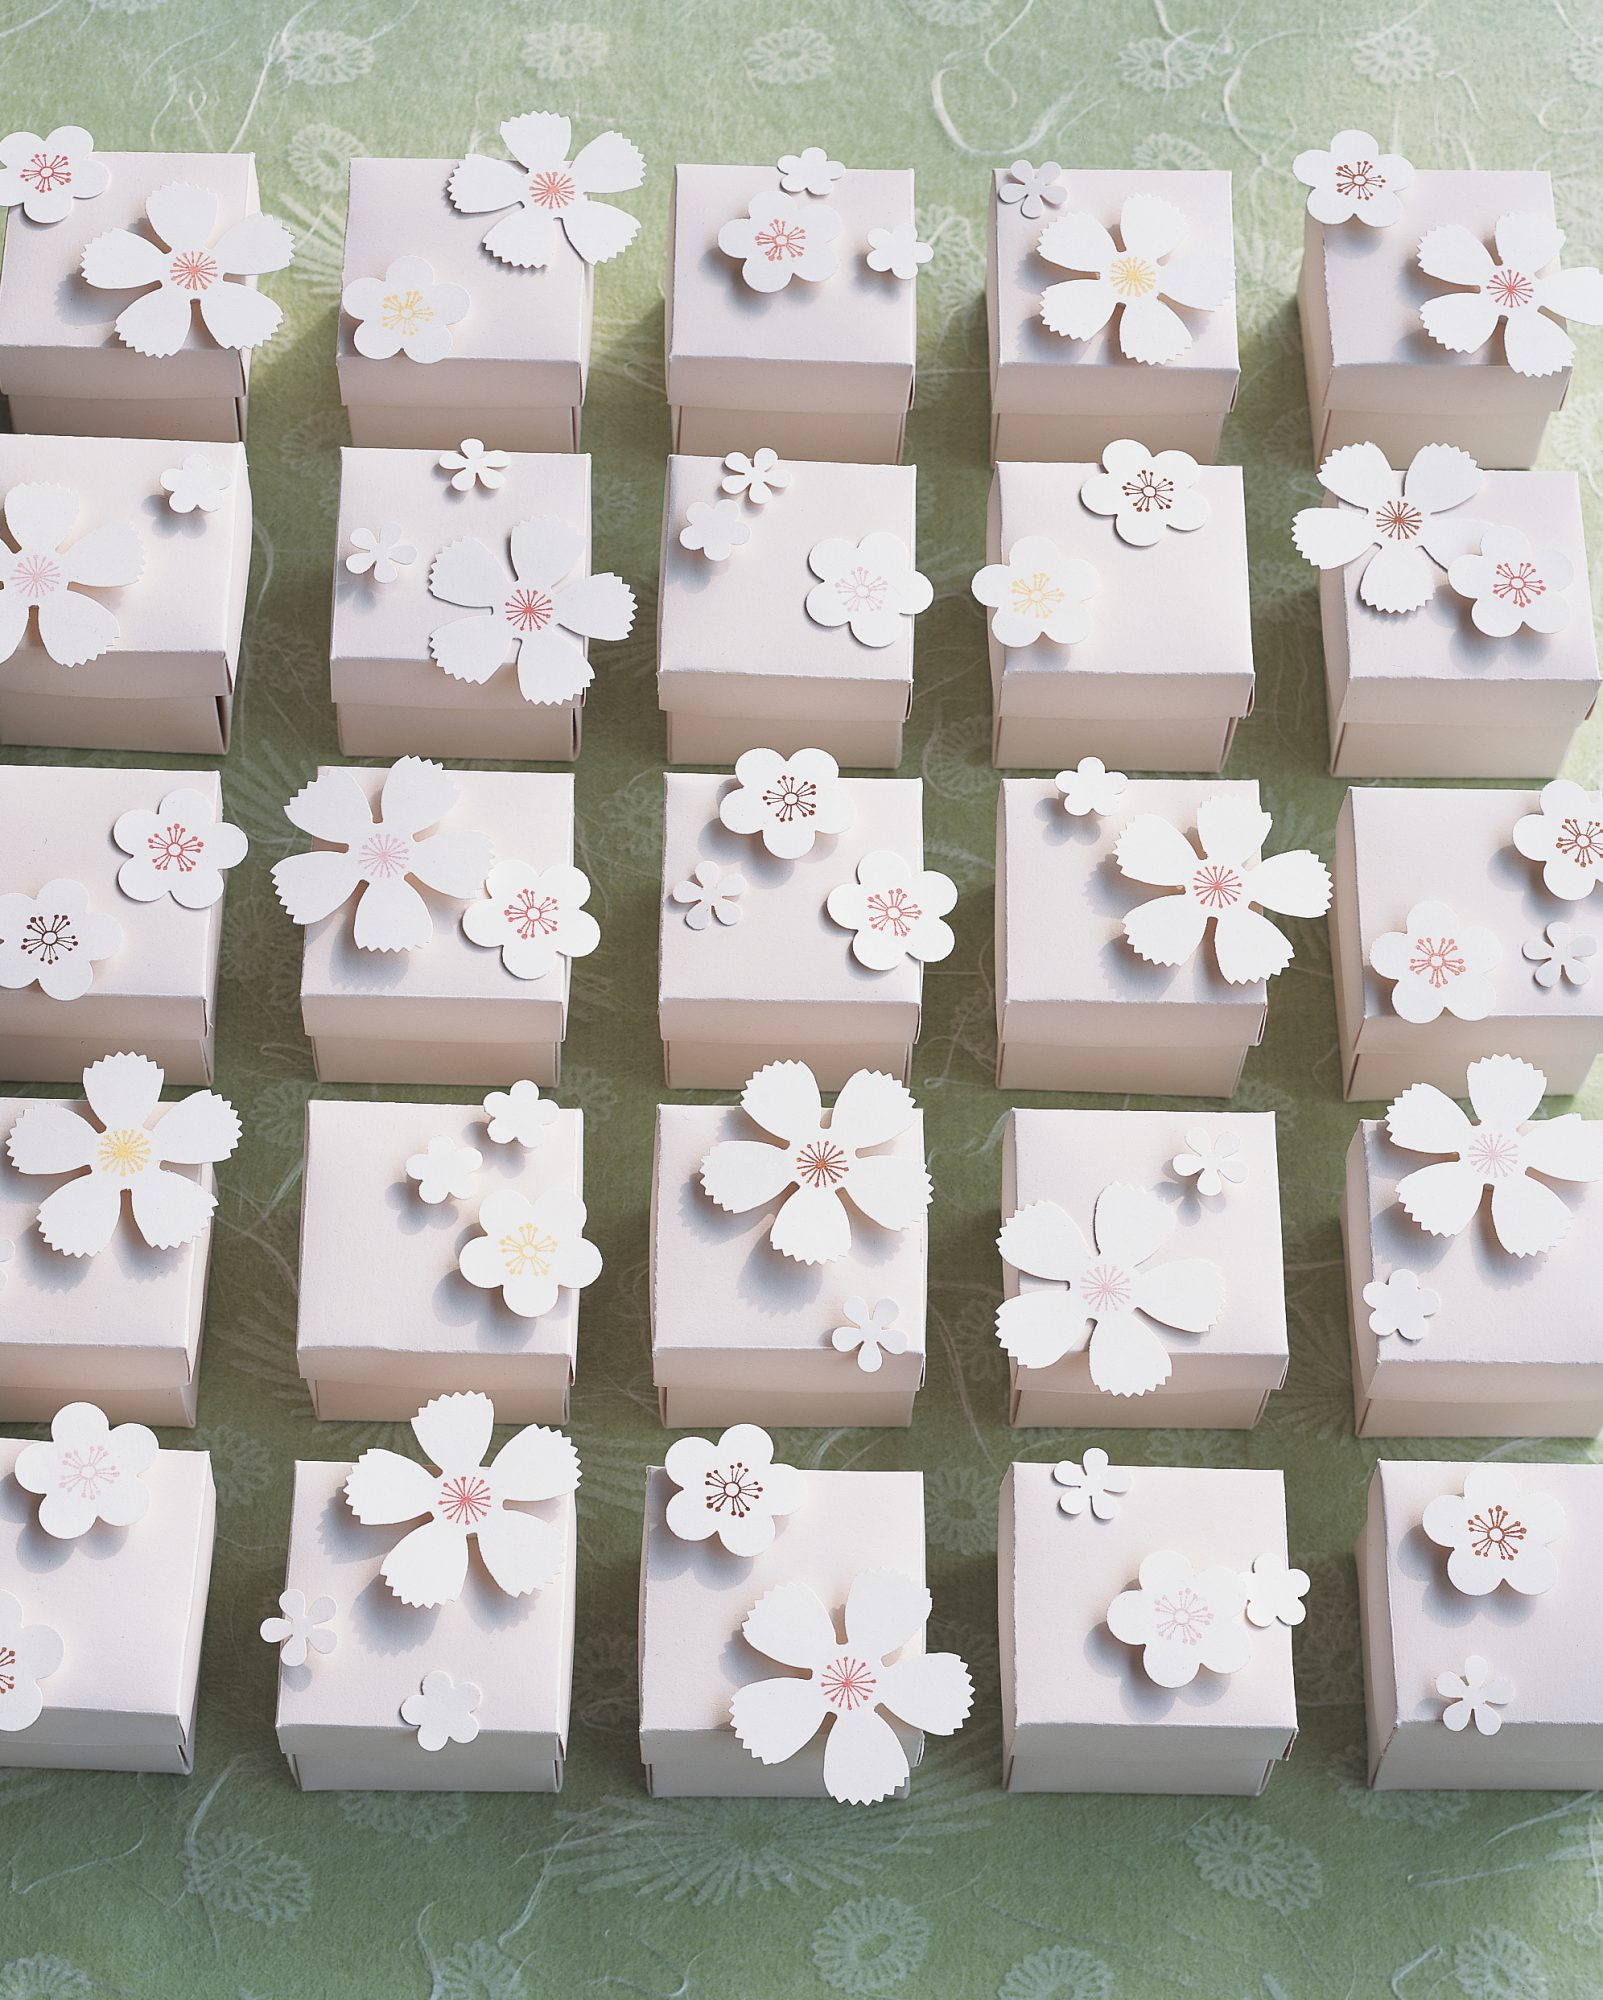 diy-favor-boxes-blossom-boxes-sp05-0715.jpg